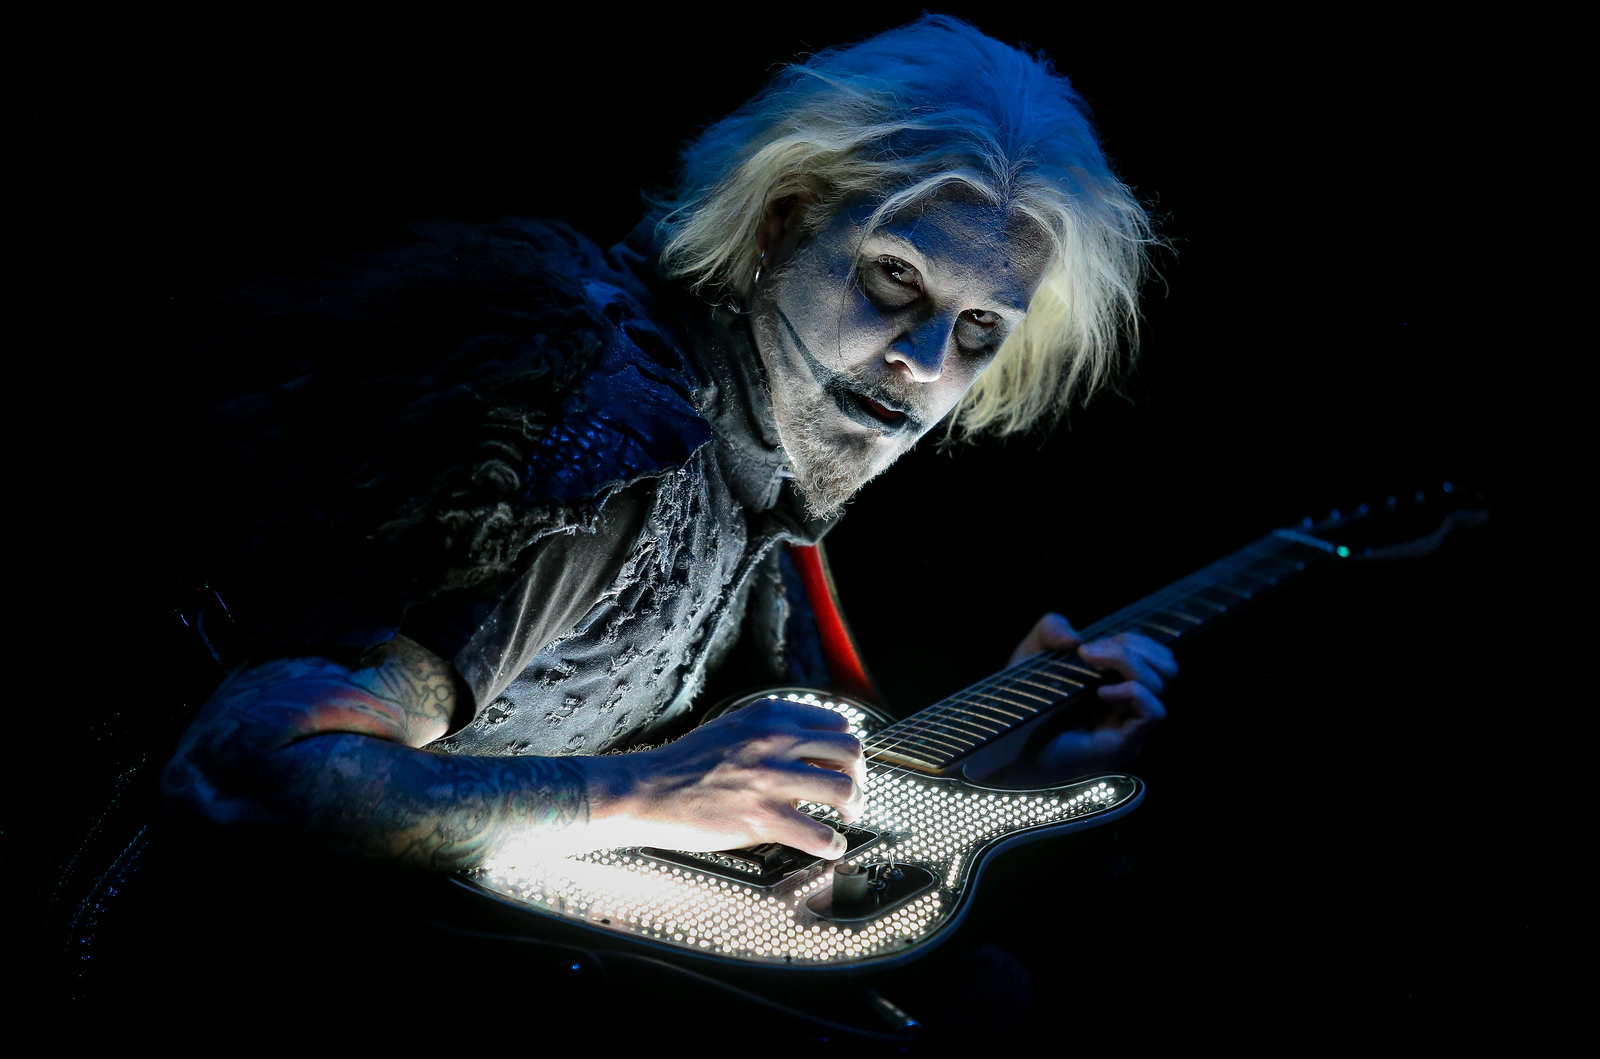 John 5 & The Creatures @ NAMMJAM 2016 – 01/22/2016